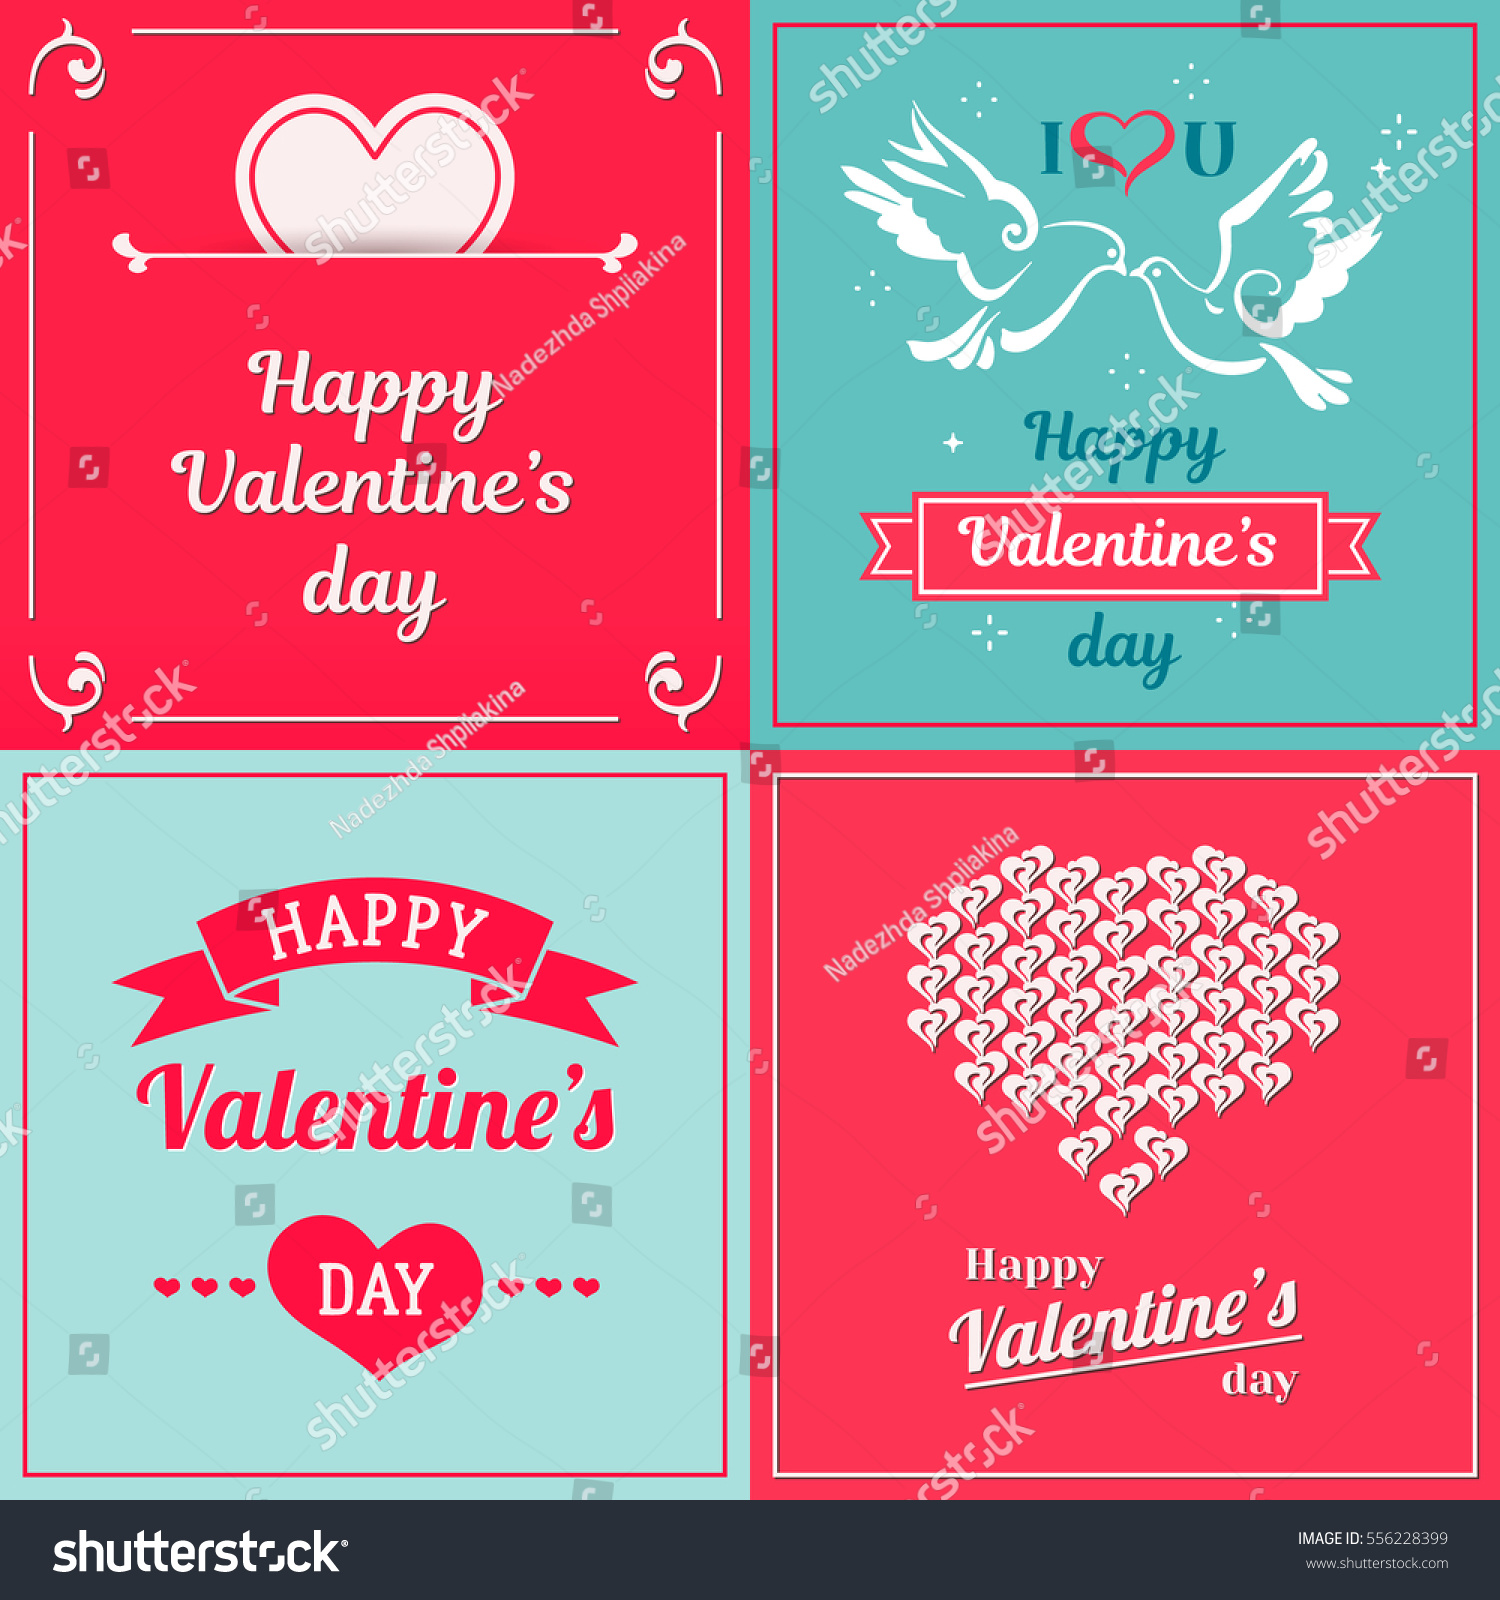 Set valentine cards greetings valentines day stock vector 556228399 set valentine cards greetings valentines day stock vector 556228399 shutterstock m4hsunfo